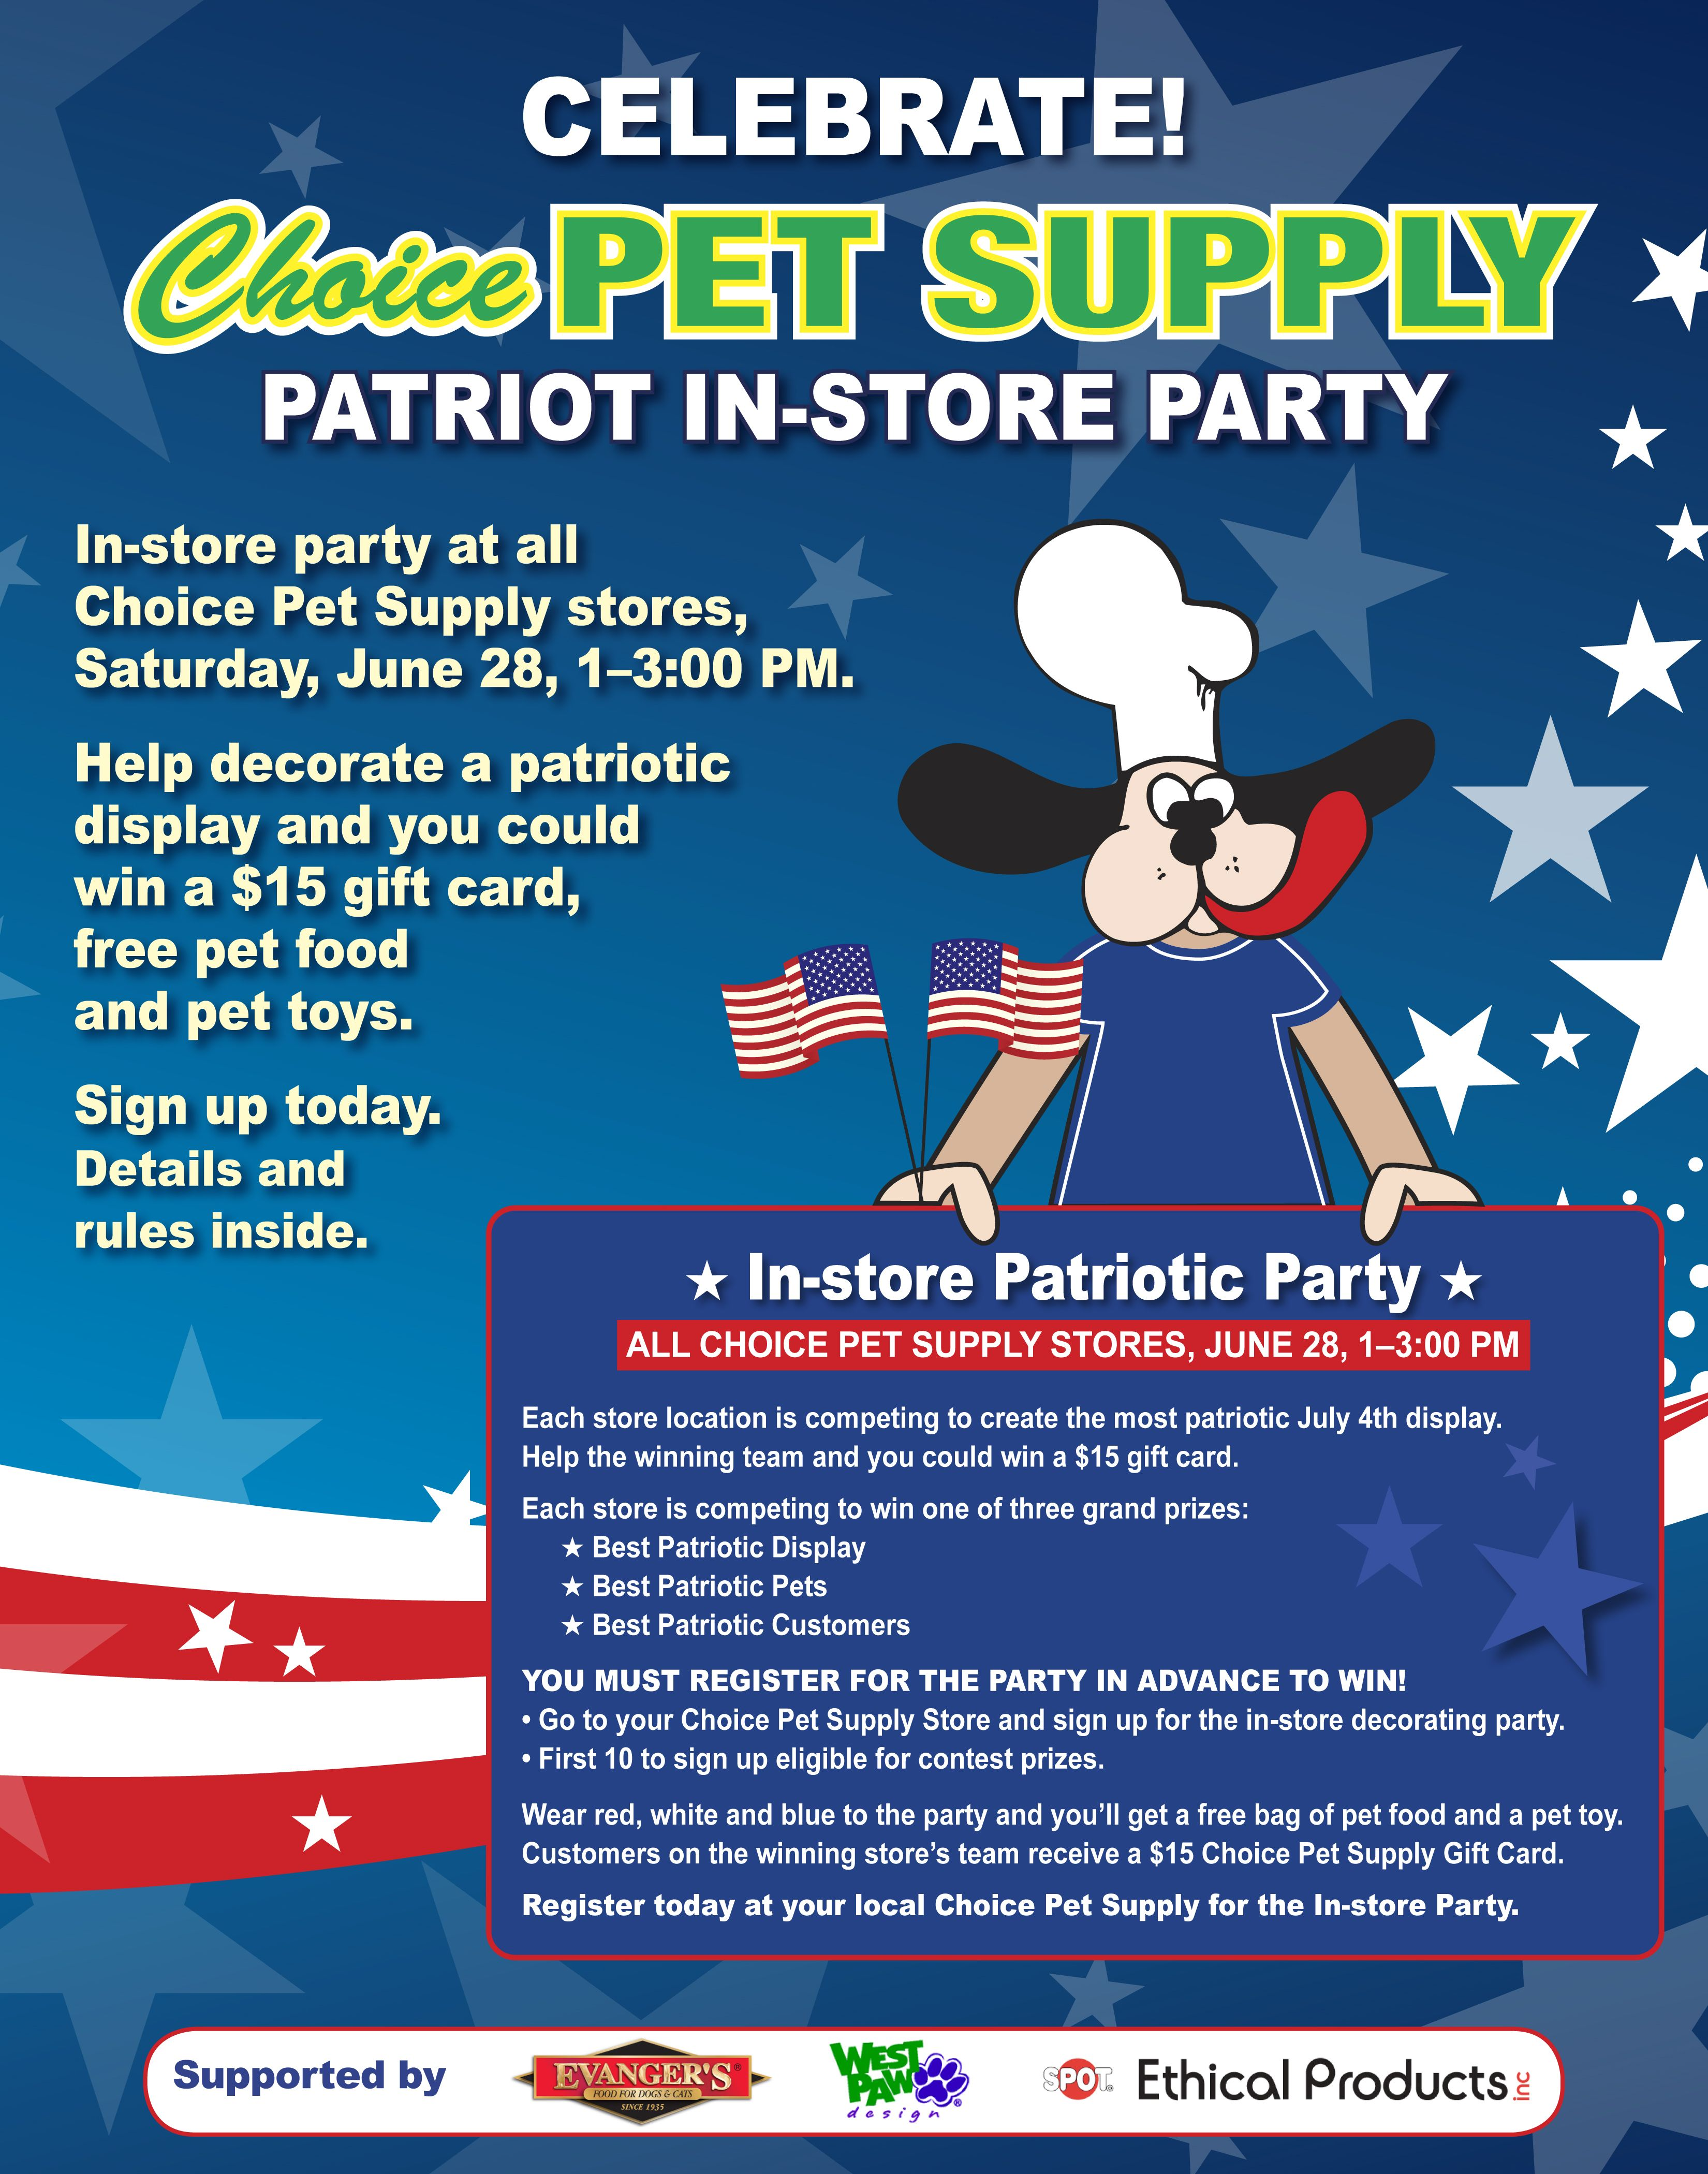 Get Your Red White And Blue On And Come To The Patriot Party